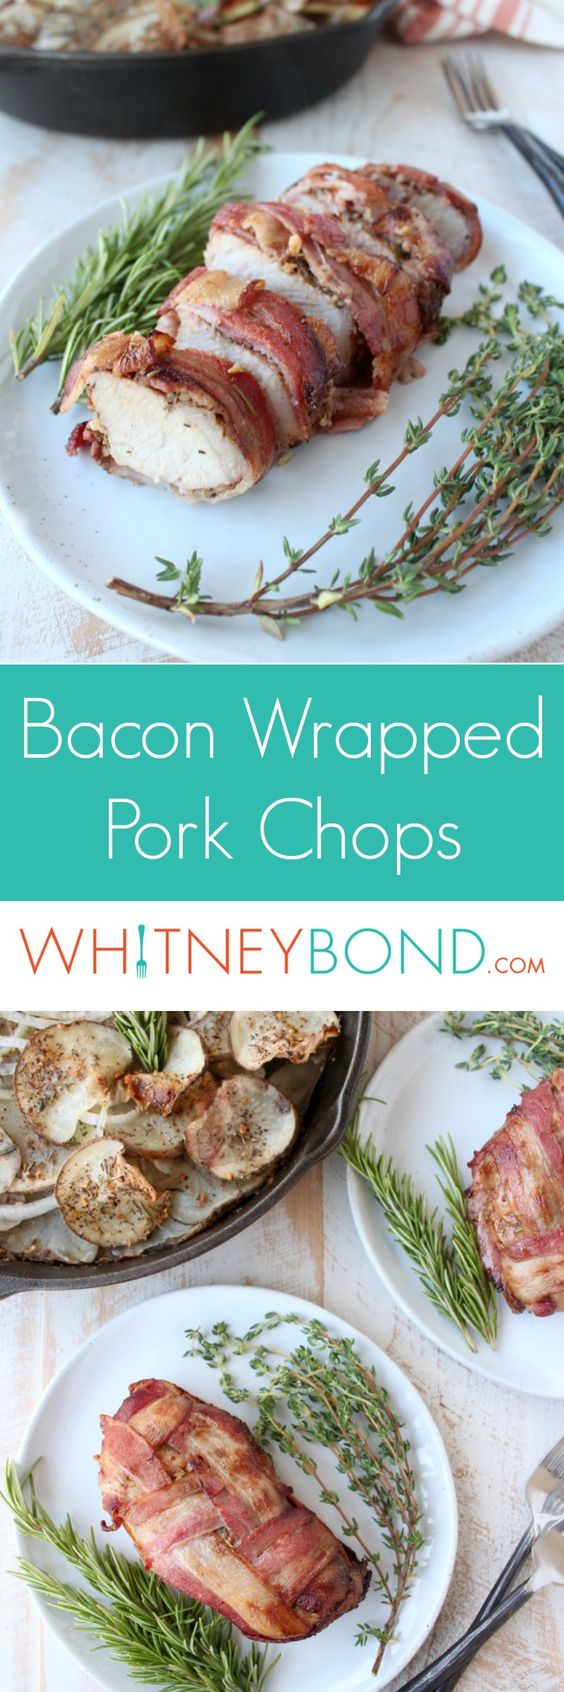 Pork chops are tossed in a balsamic herb marinade, then wrapped in a bacon weave for a delicious & impressive dinner recipe that is so easy to make!